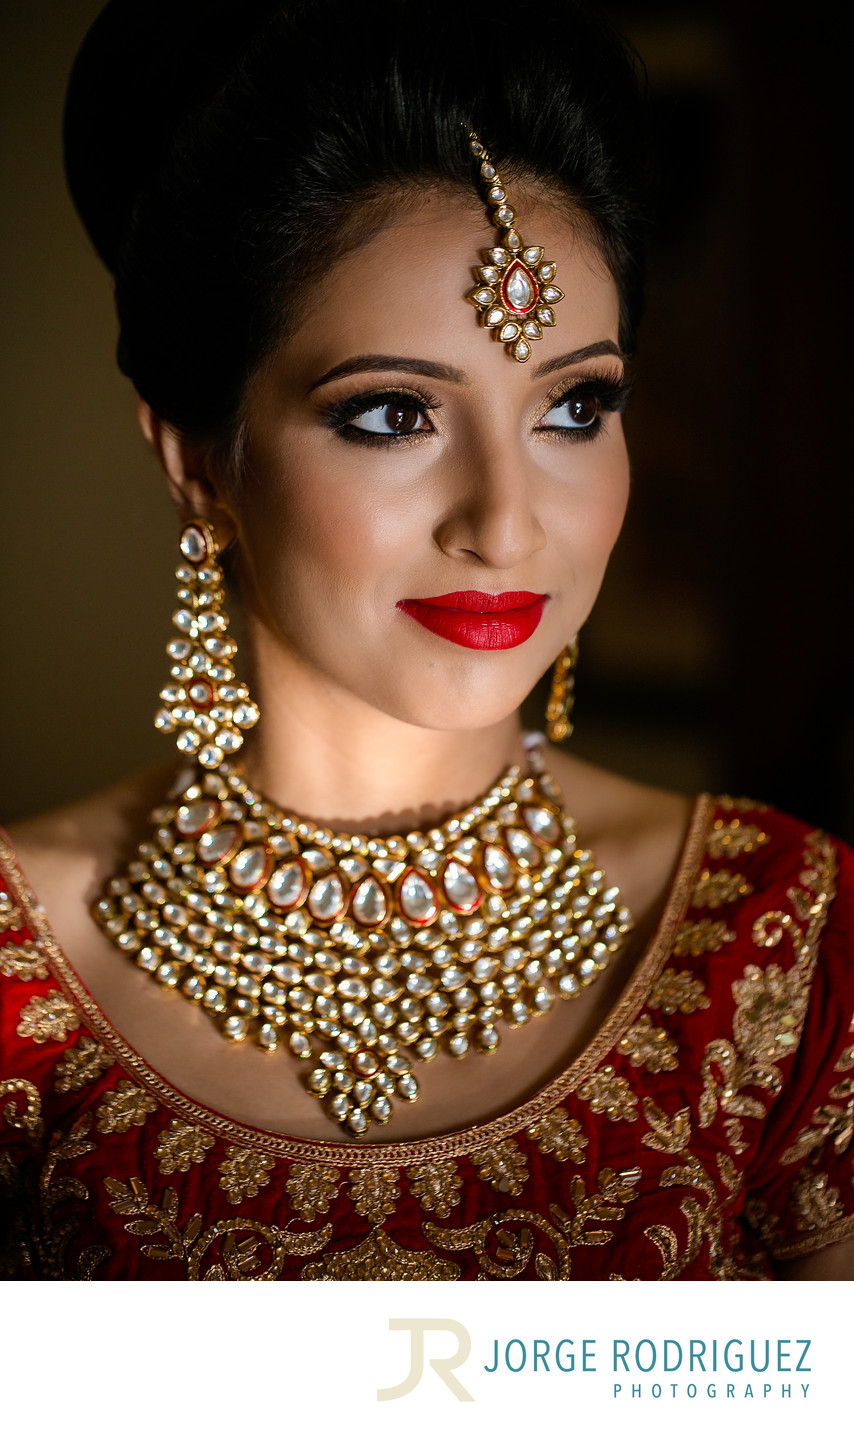 Best Indian Bride Portrait